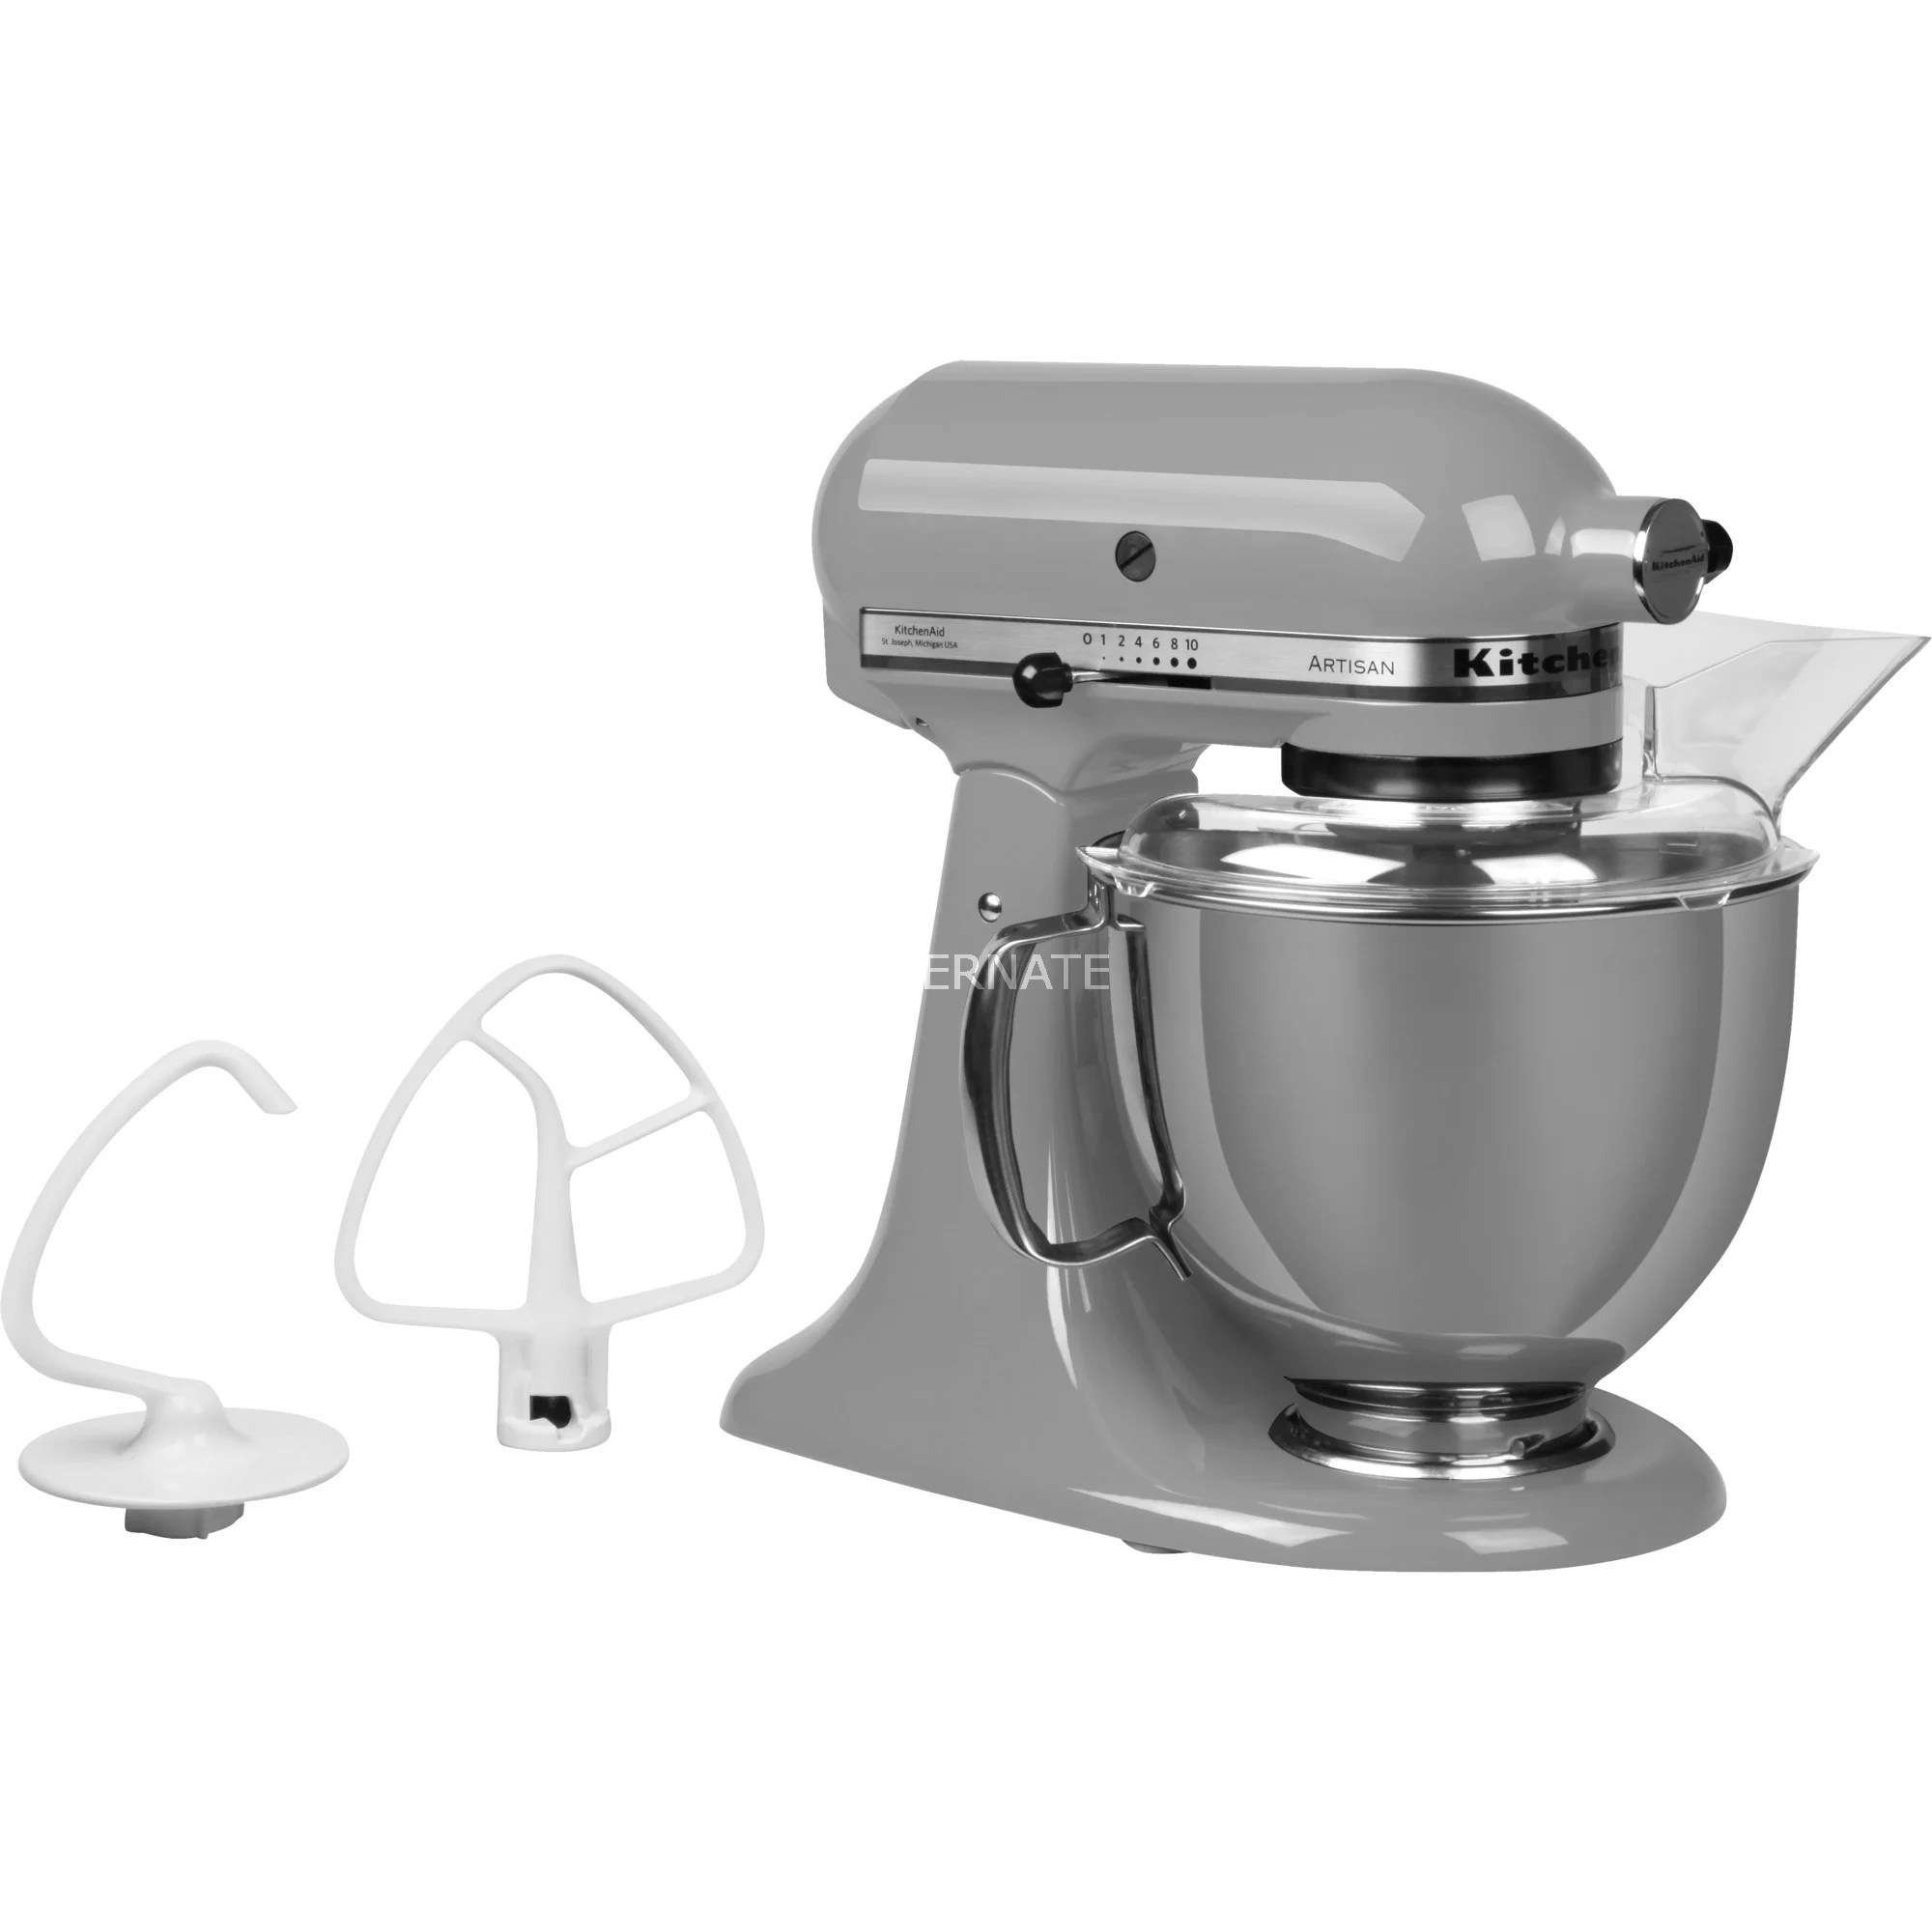 Kitchenaid Küchenmaschine Idealo Kitchenaid K C3 Bcchenmaschine Artisan Metallic Chrome